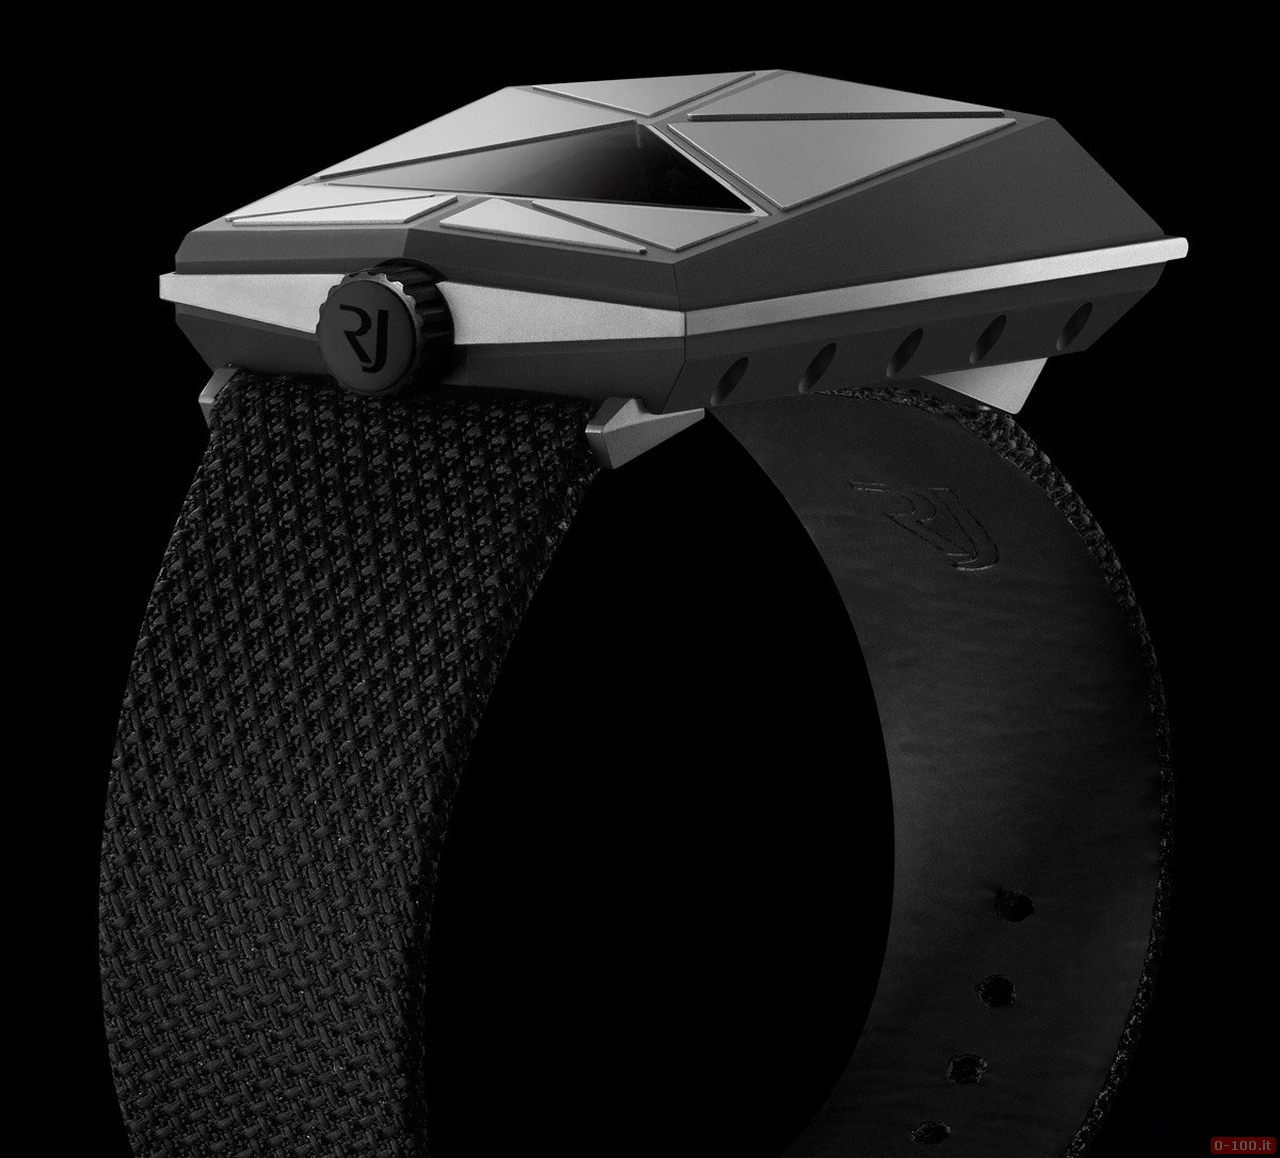 RJ-Romain Jerome unveils its first pilot's watch: the Spacecraft